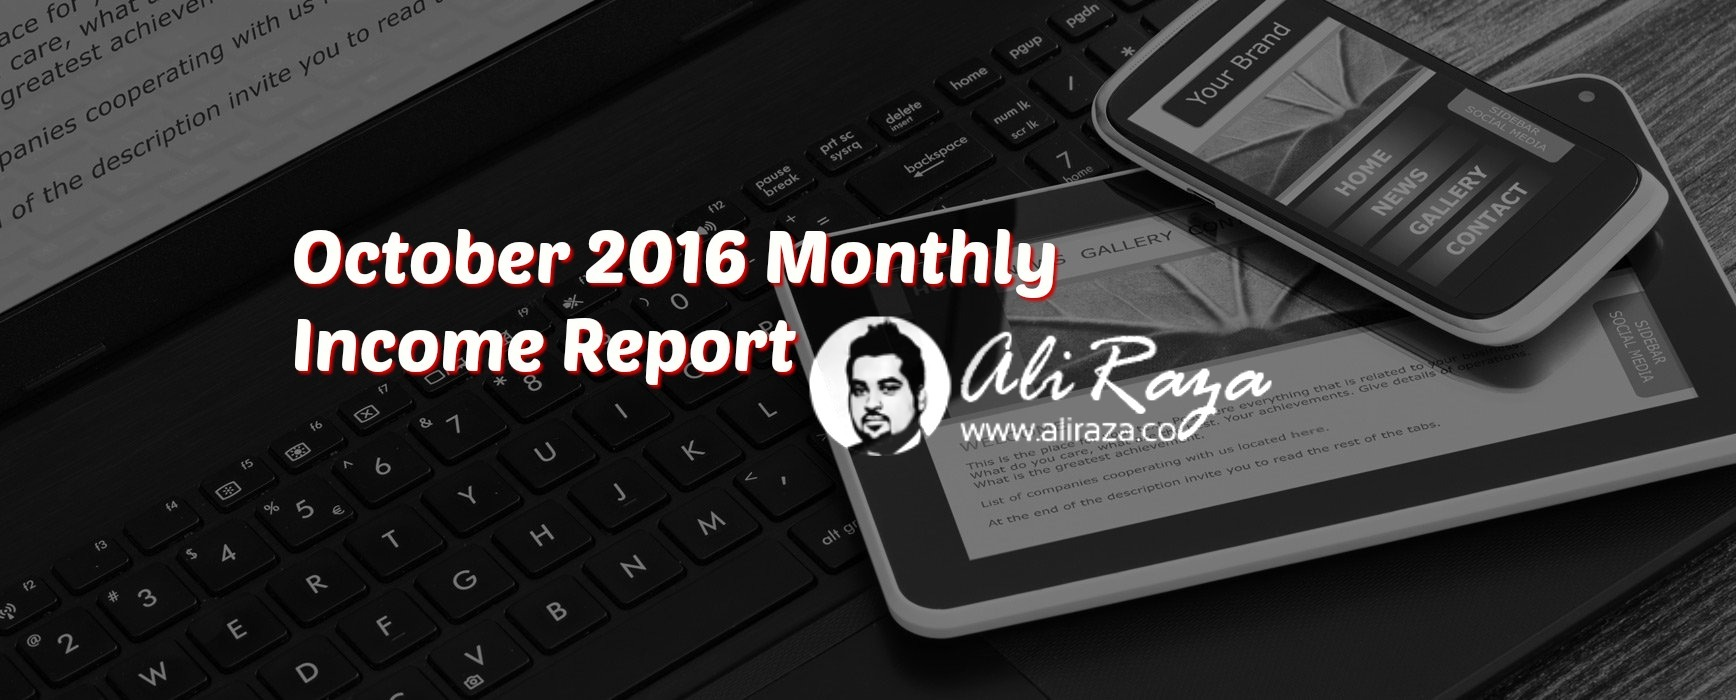 october 2016 monthly income report aliraza.co